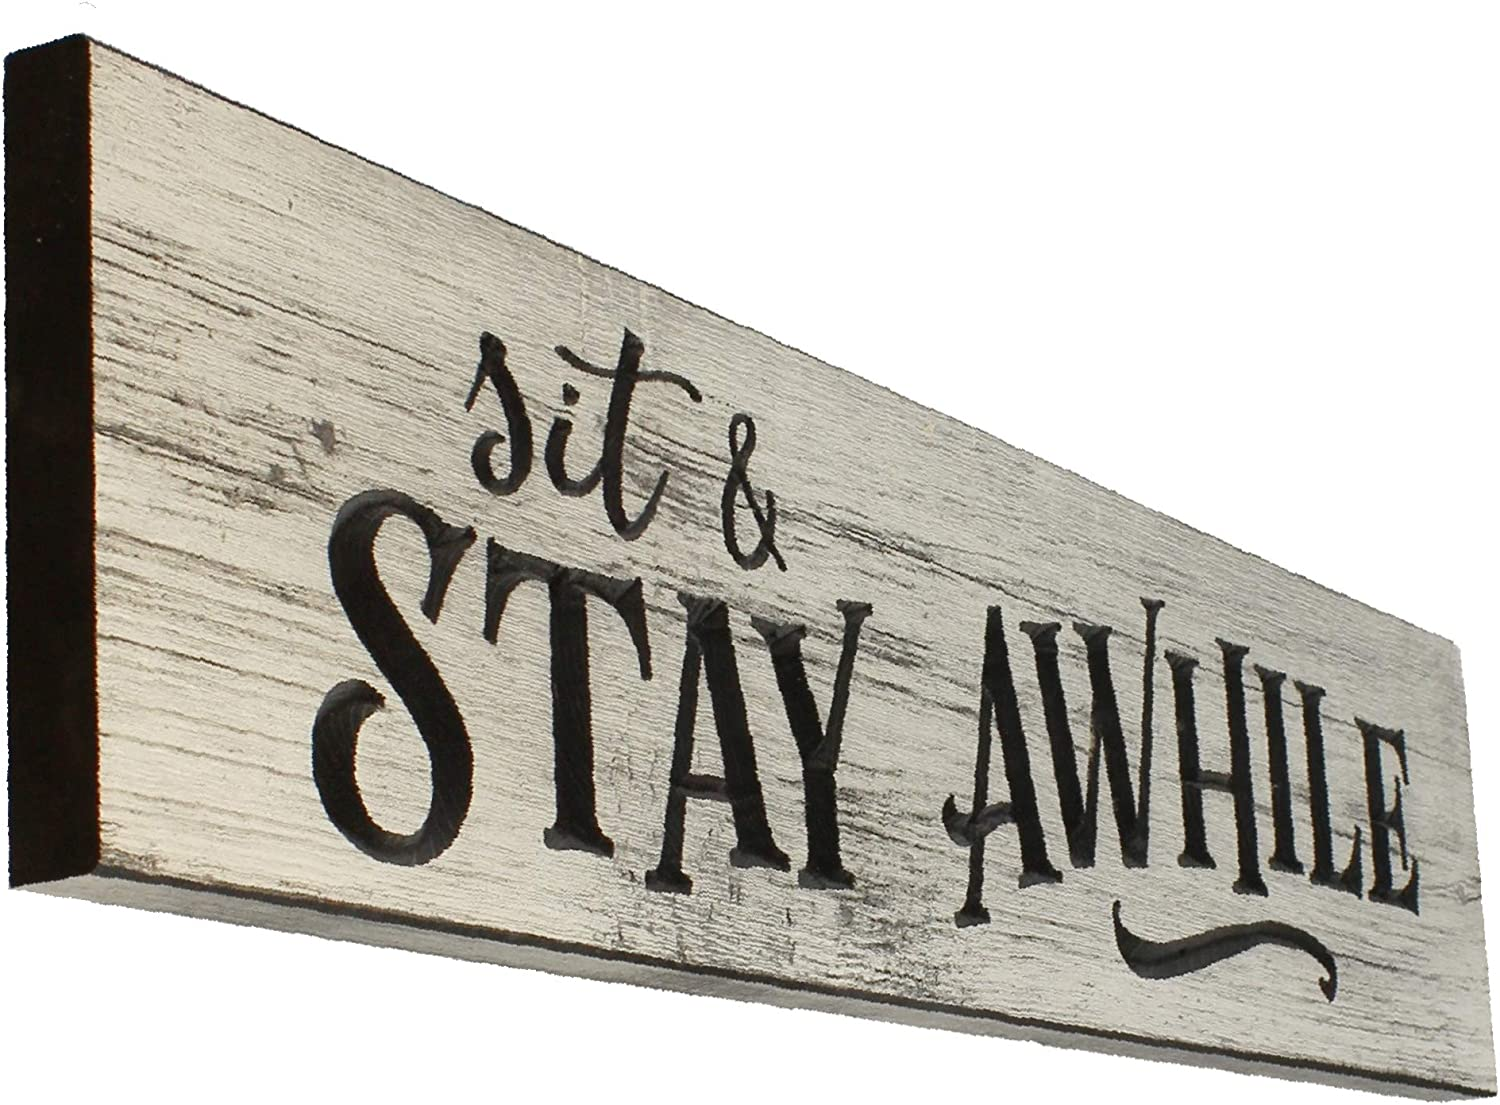 Large Sit and Stay Awhile Engraved Rustic Whitewash Wood Wall Sign Farmhouse Decor